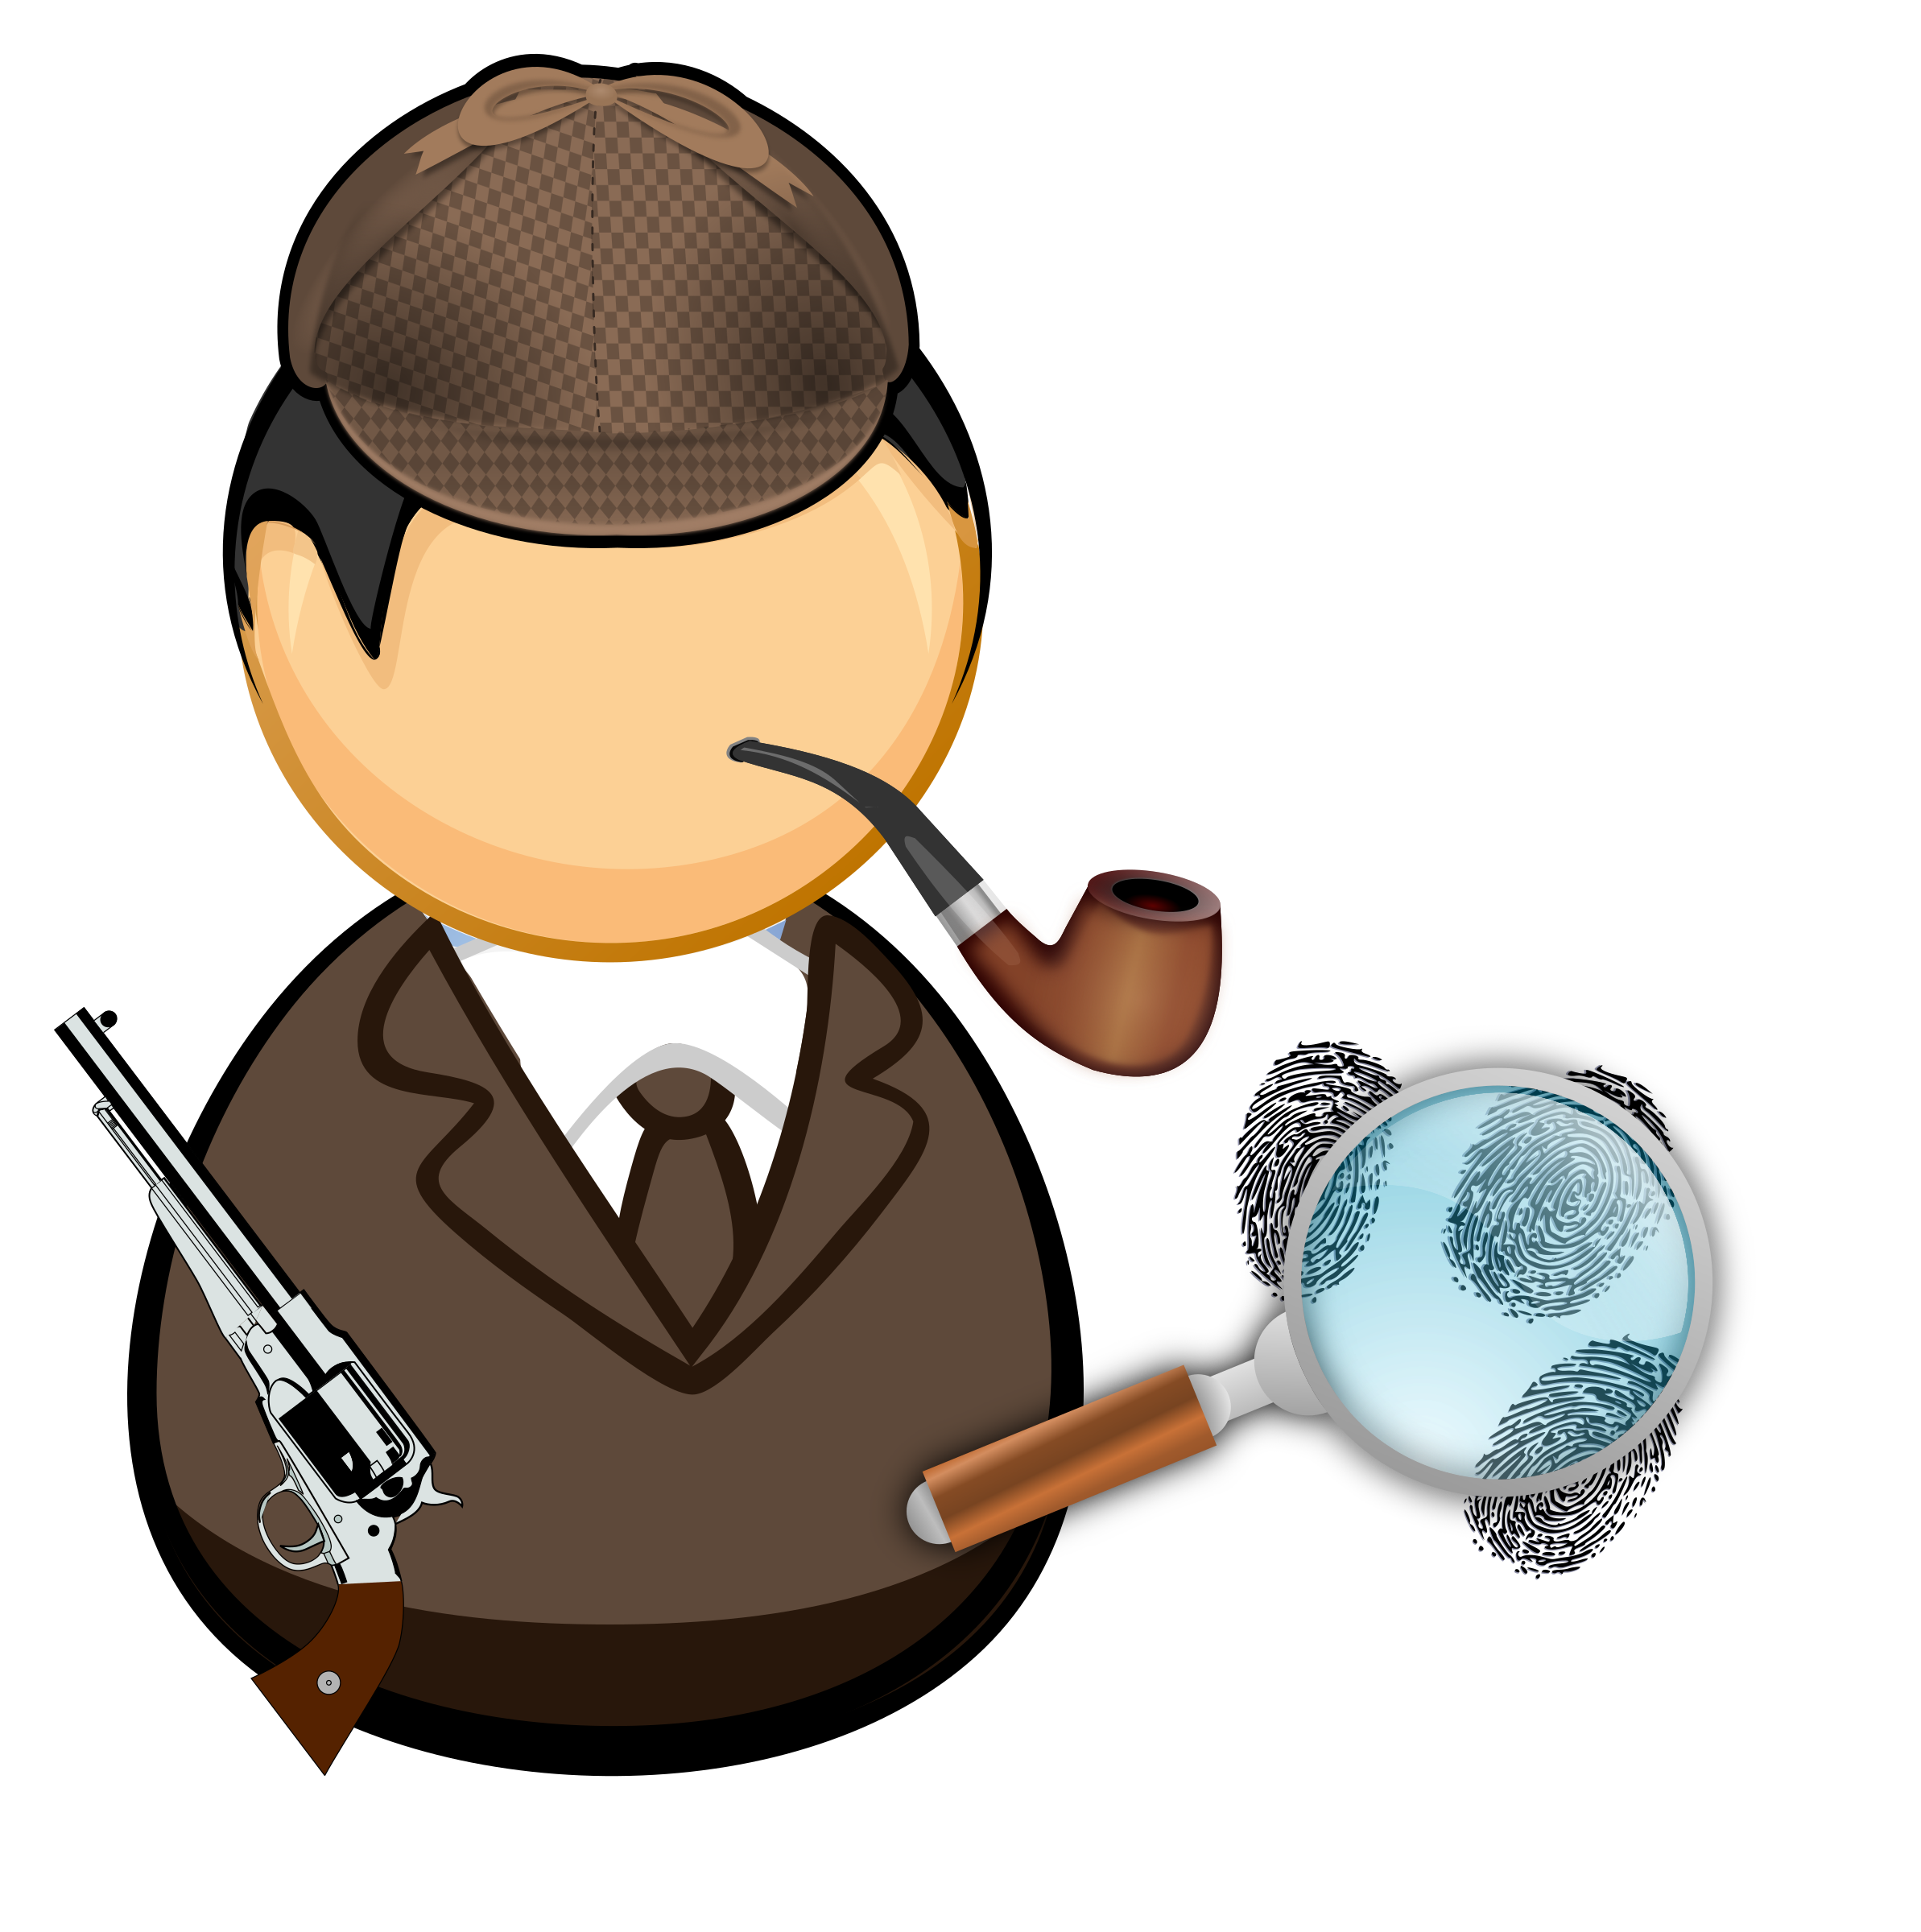 With pipe and magnifying. Fox clipart detective